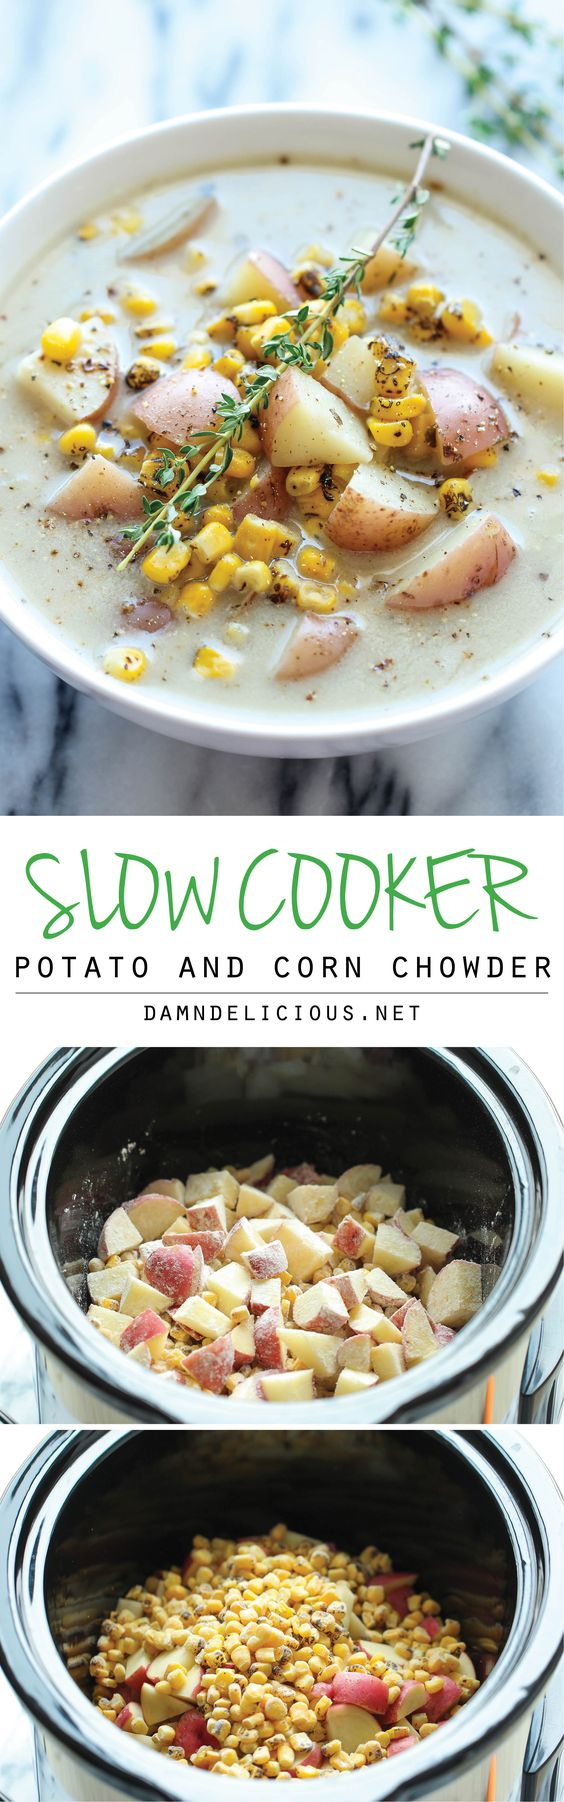 Slow Cooker Potato and Corn Chowder: the easiest chowder you will ever make - throw everything in the crockpot and you're set.